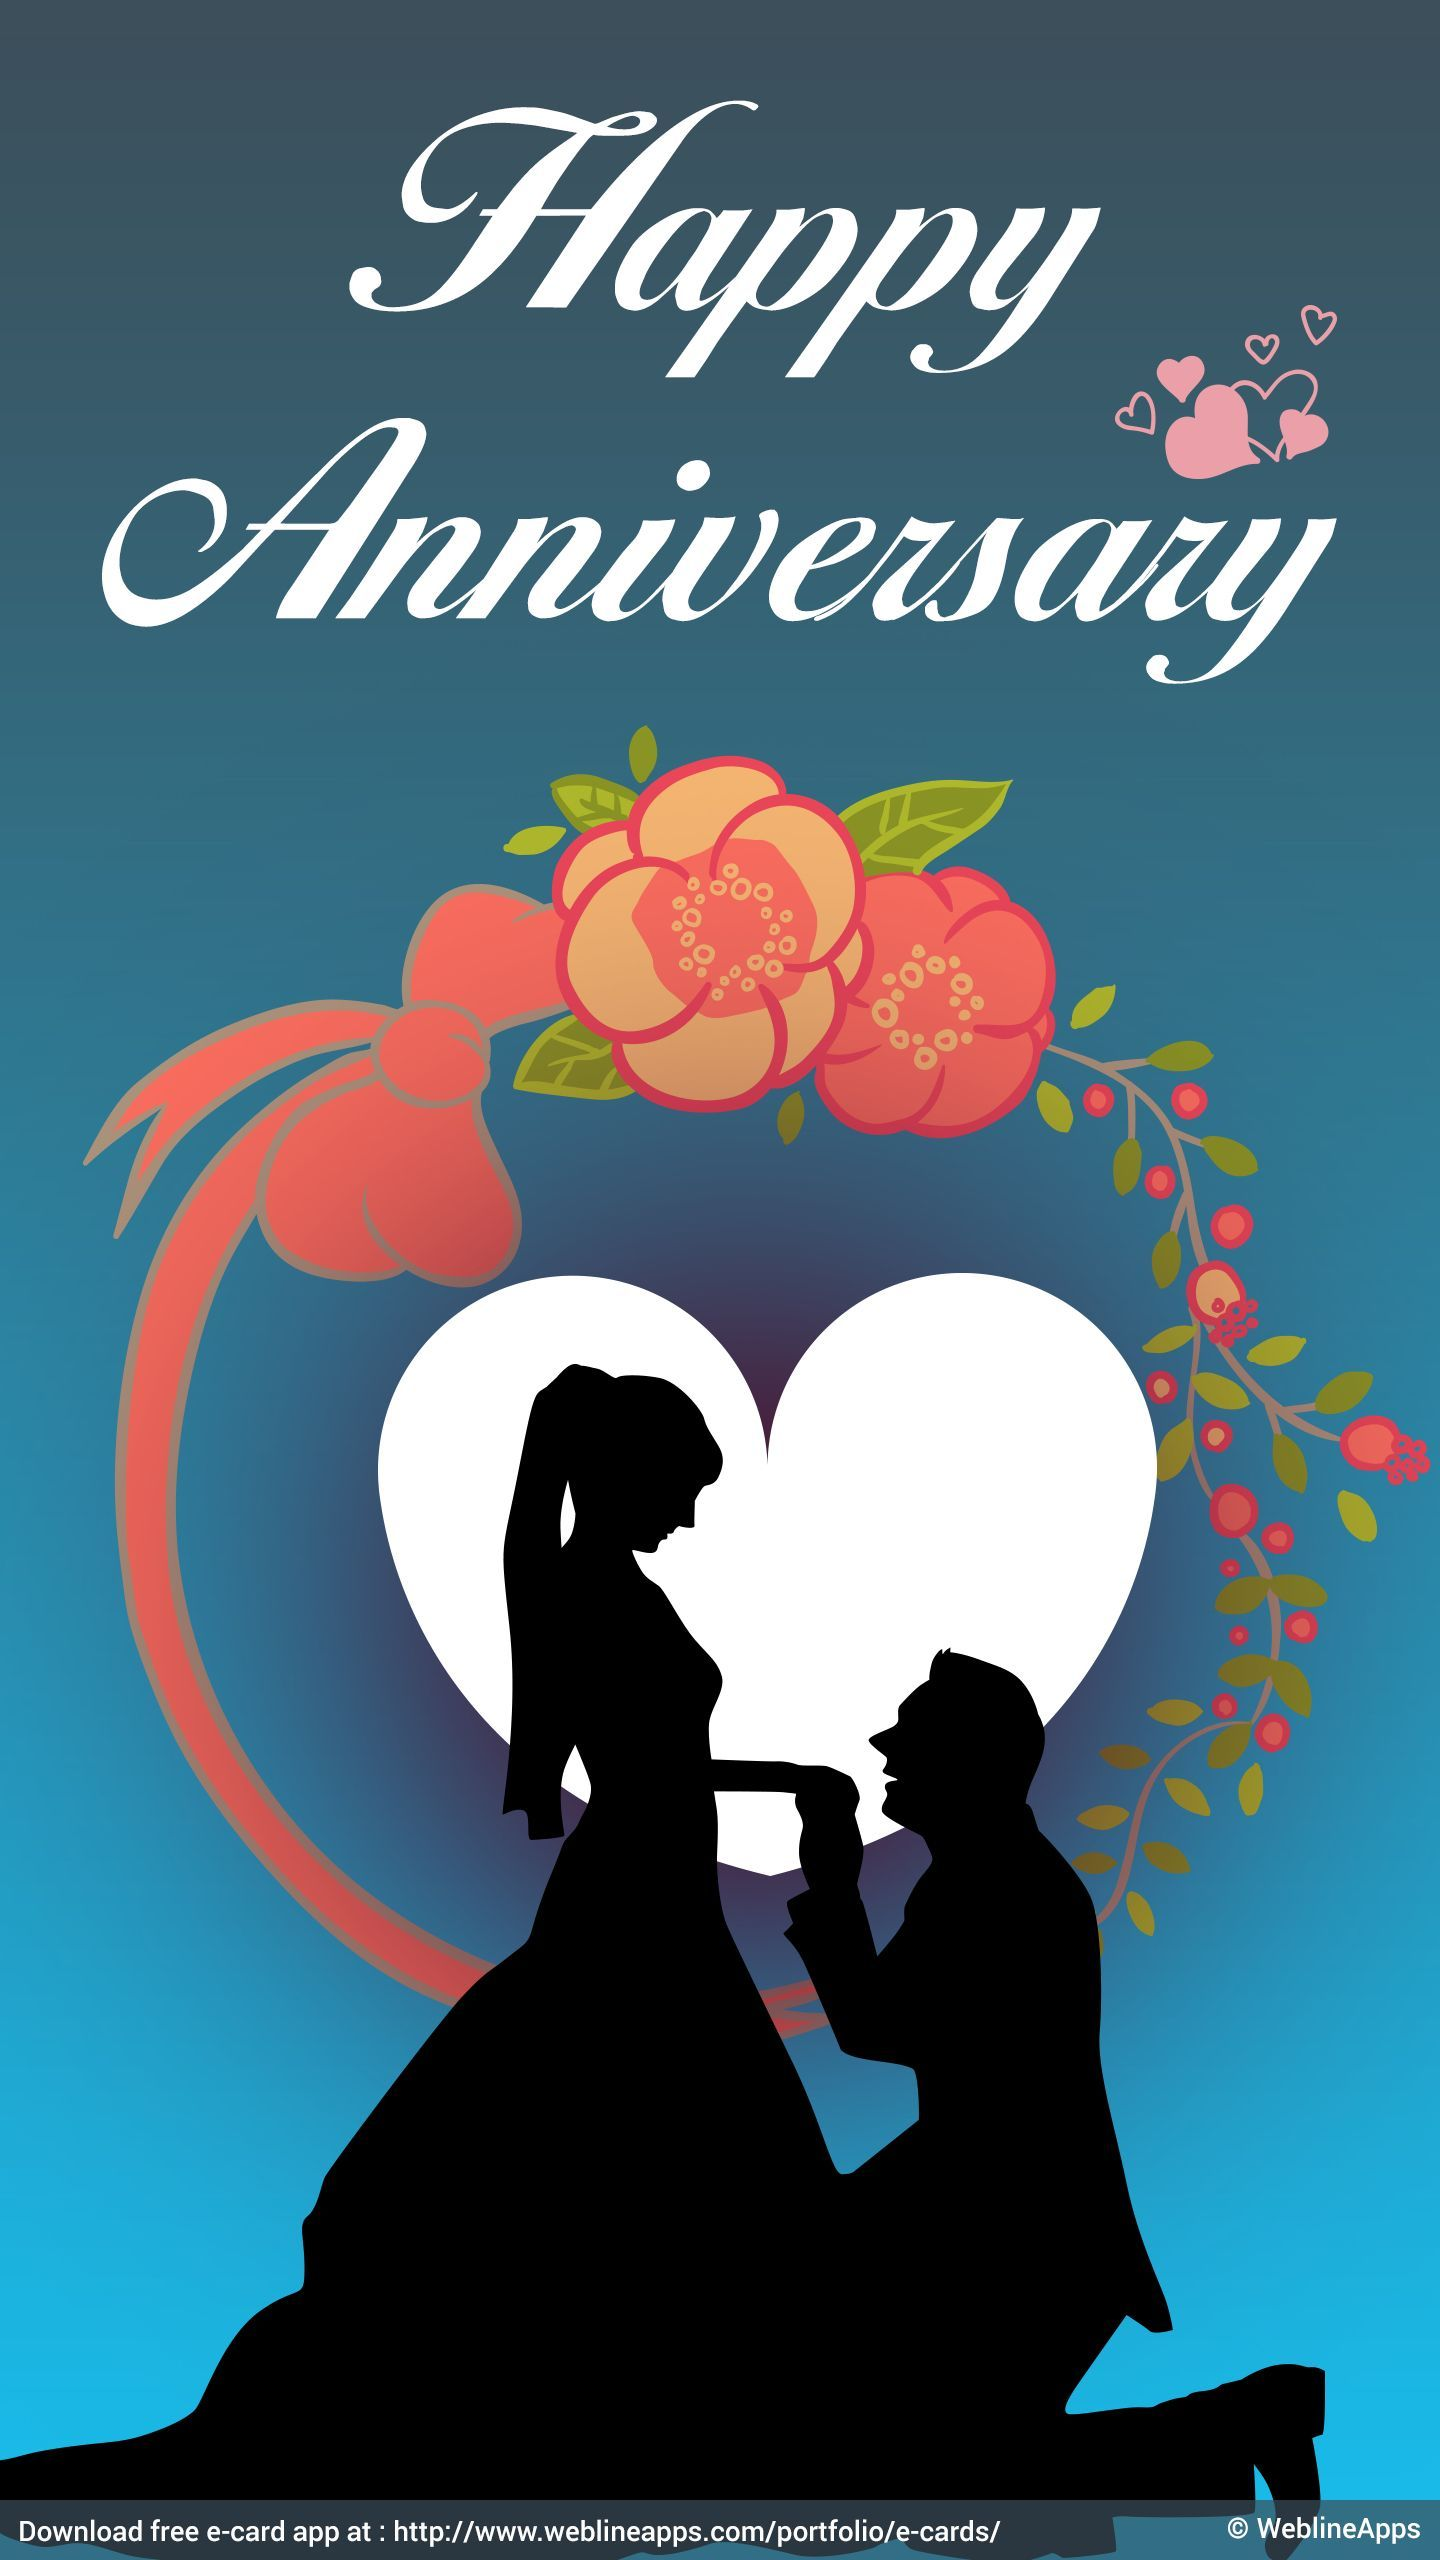 Aarti Ajay Aarti Ajay Wedding Anniversary Wishes Best Design Happy Anniversary Cards Happy Marriage Anniversary Happy Anniversary Wishes